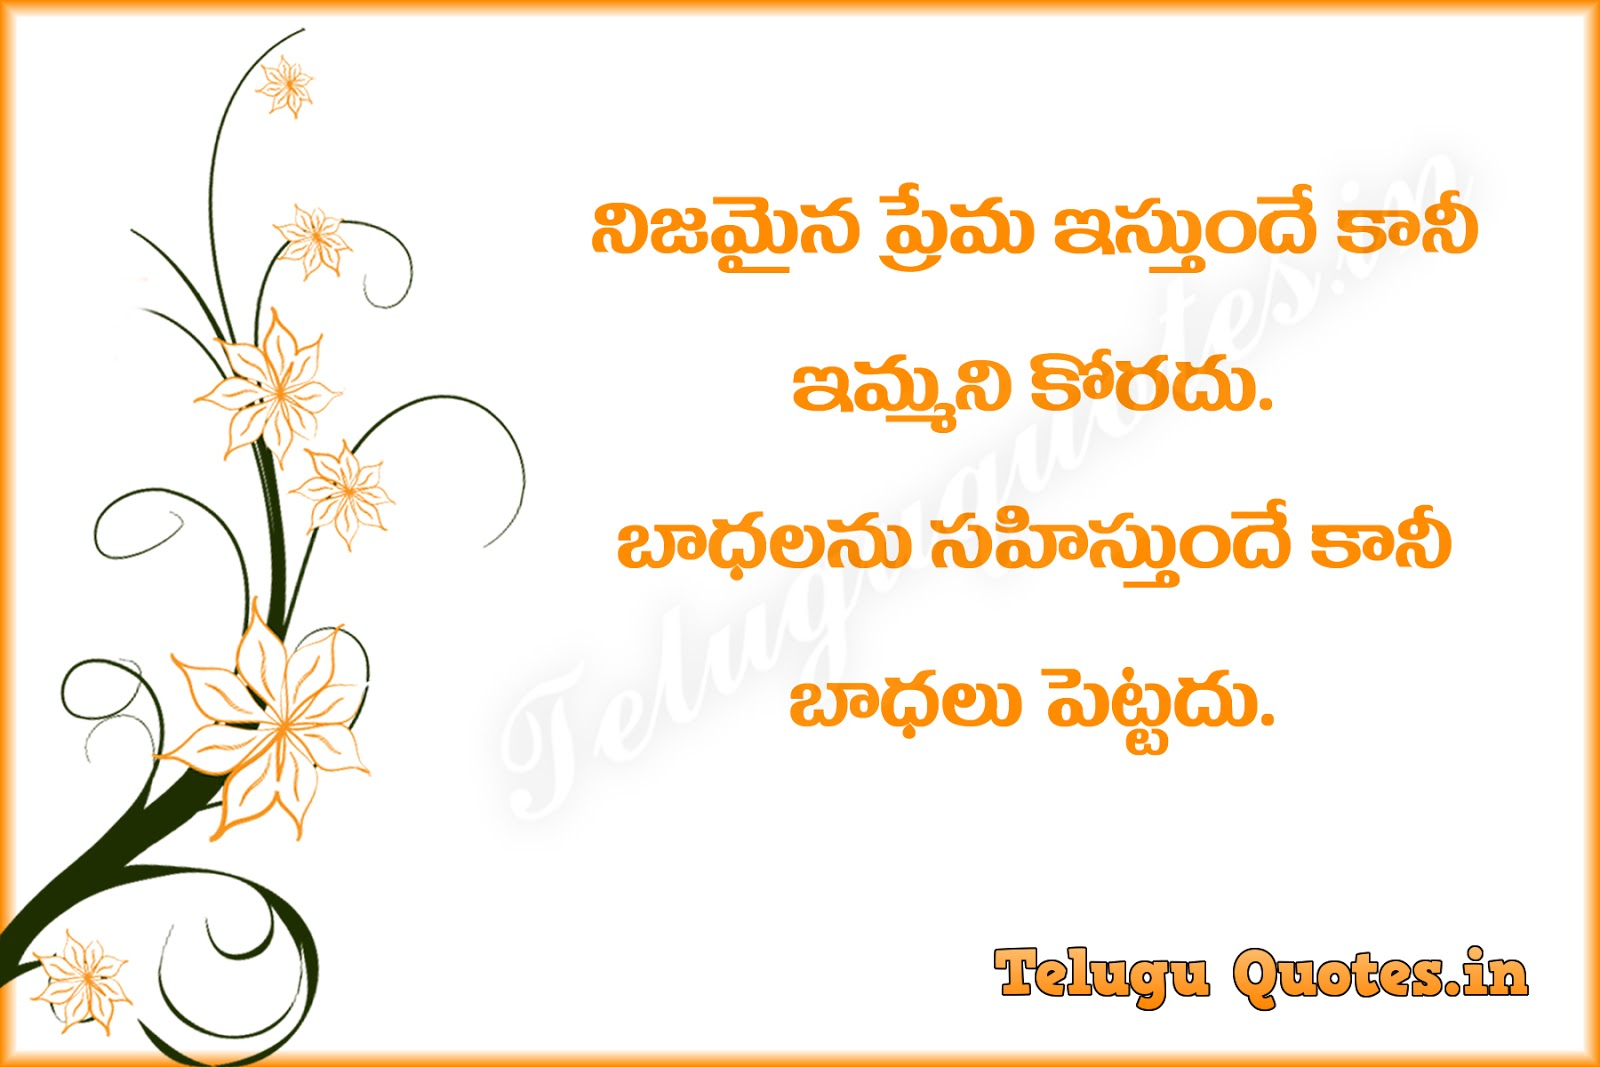 quotes in telugu sms Good Inspiration quotes in Telugu telugu sukthulu Heart Touching Quotes love and friendship Quotes